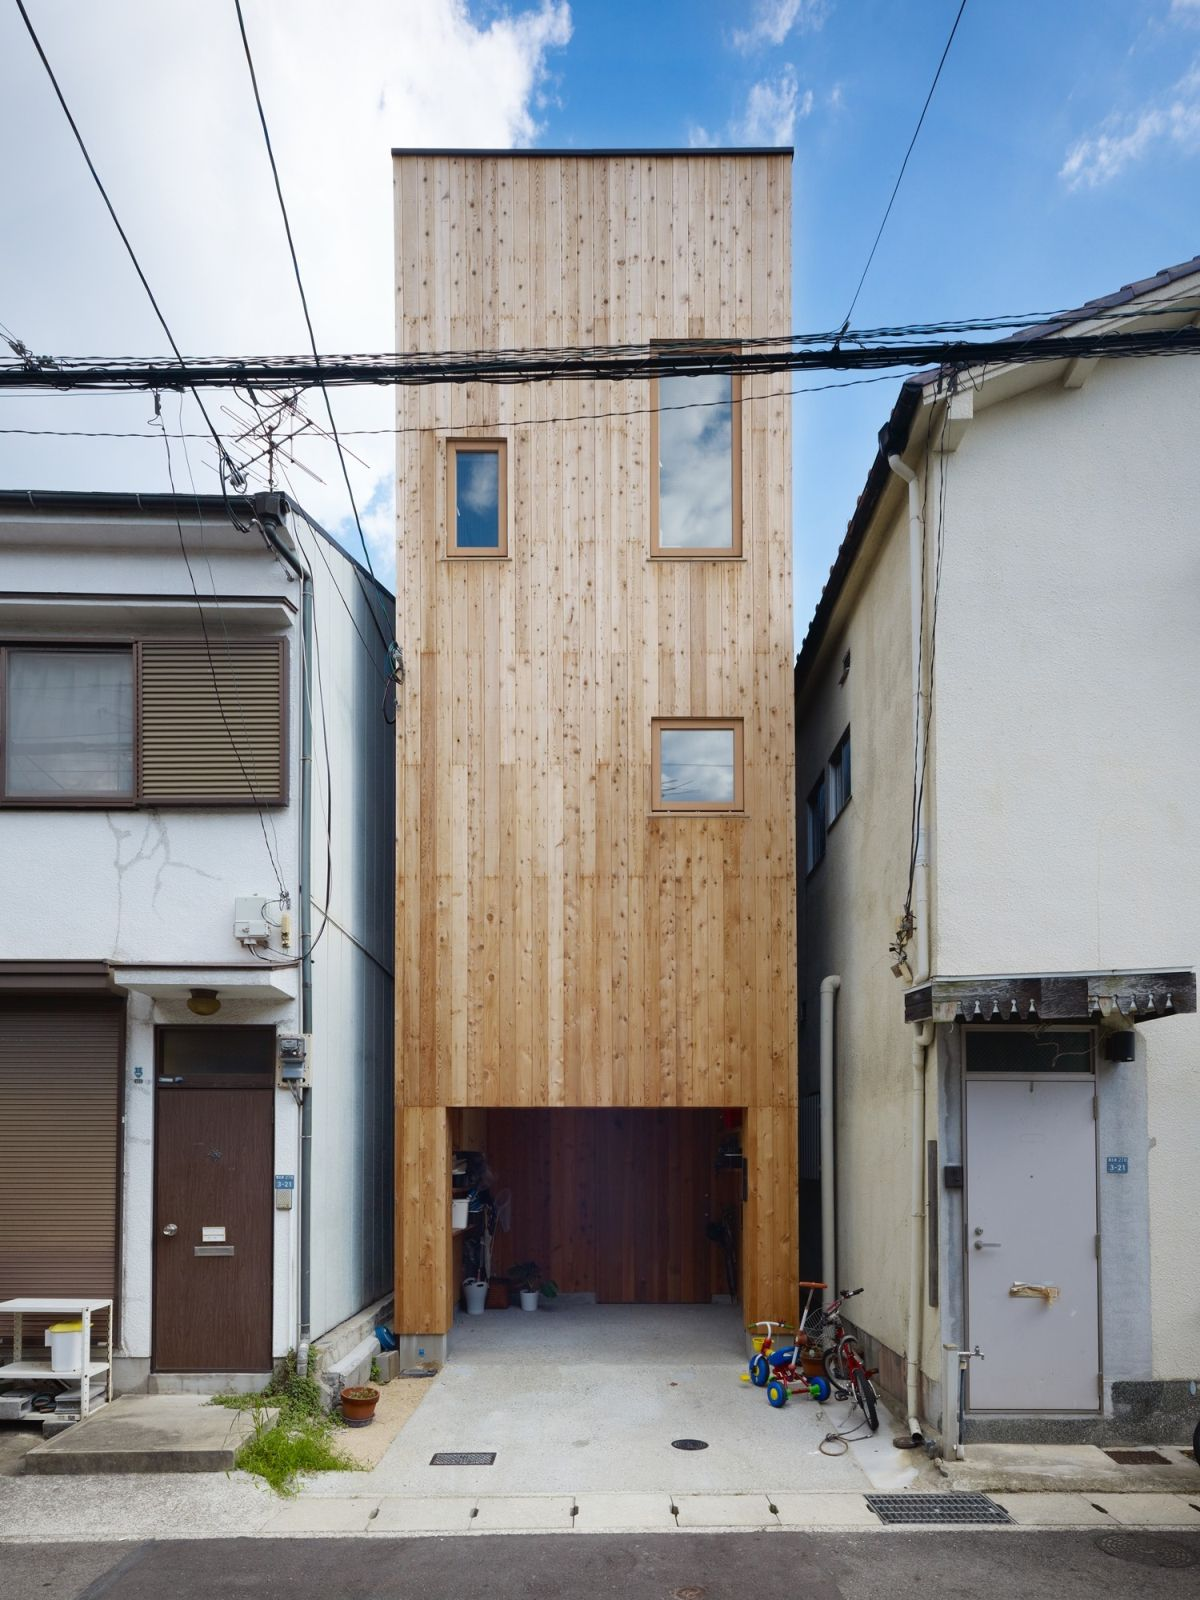 11 Spectacular Narrow Houses And Their Ingenious Design Solutions